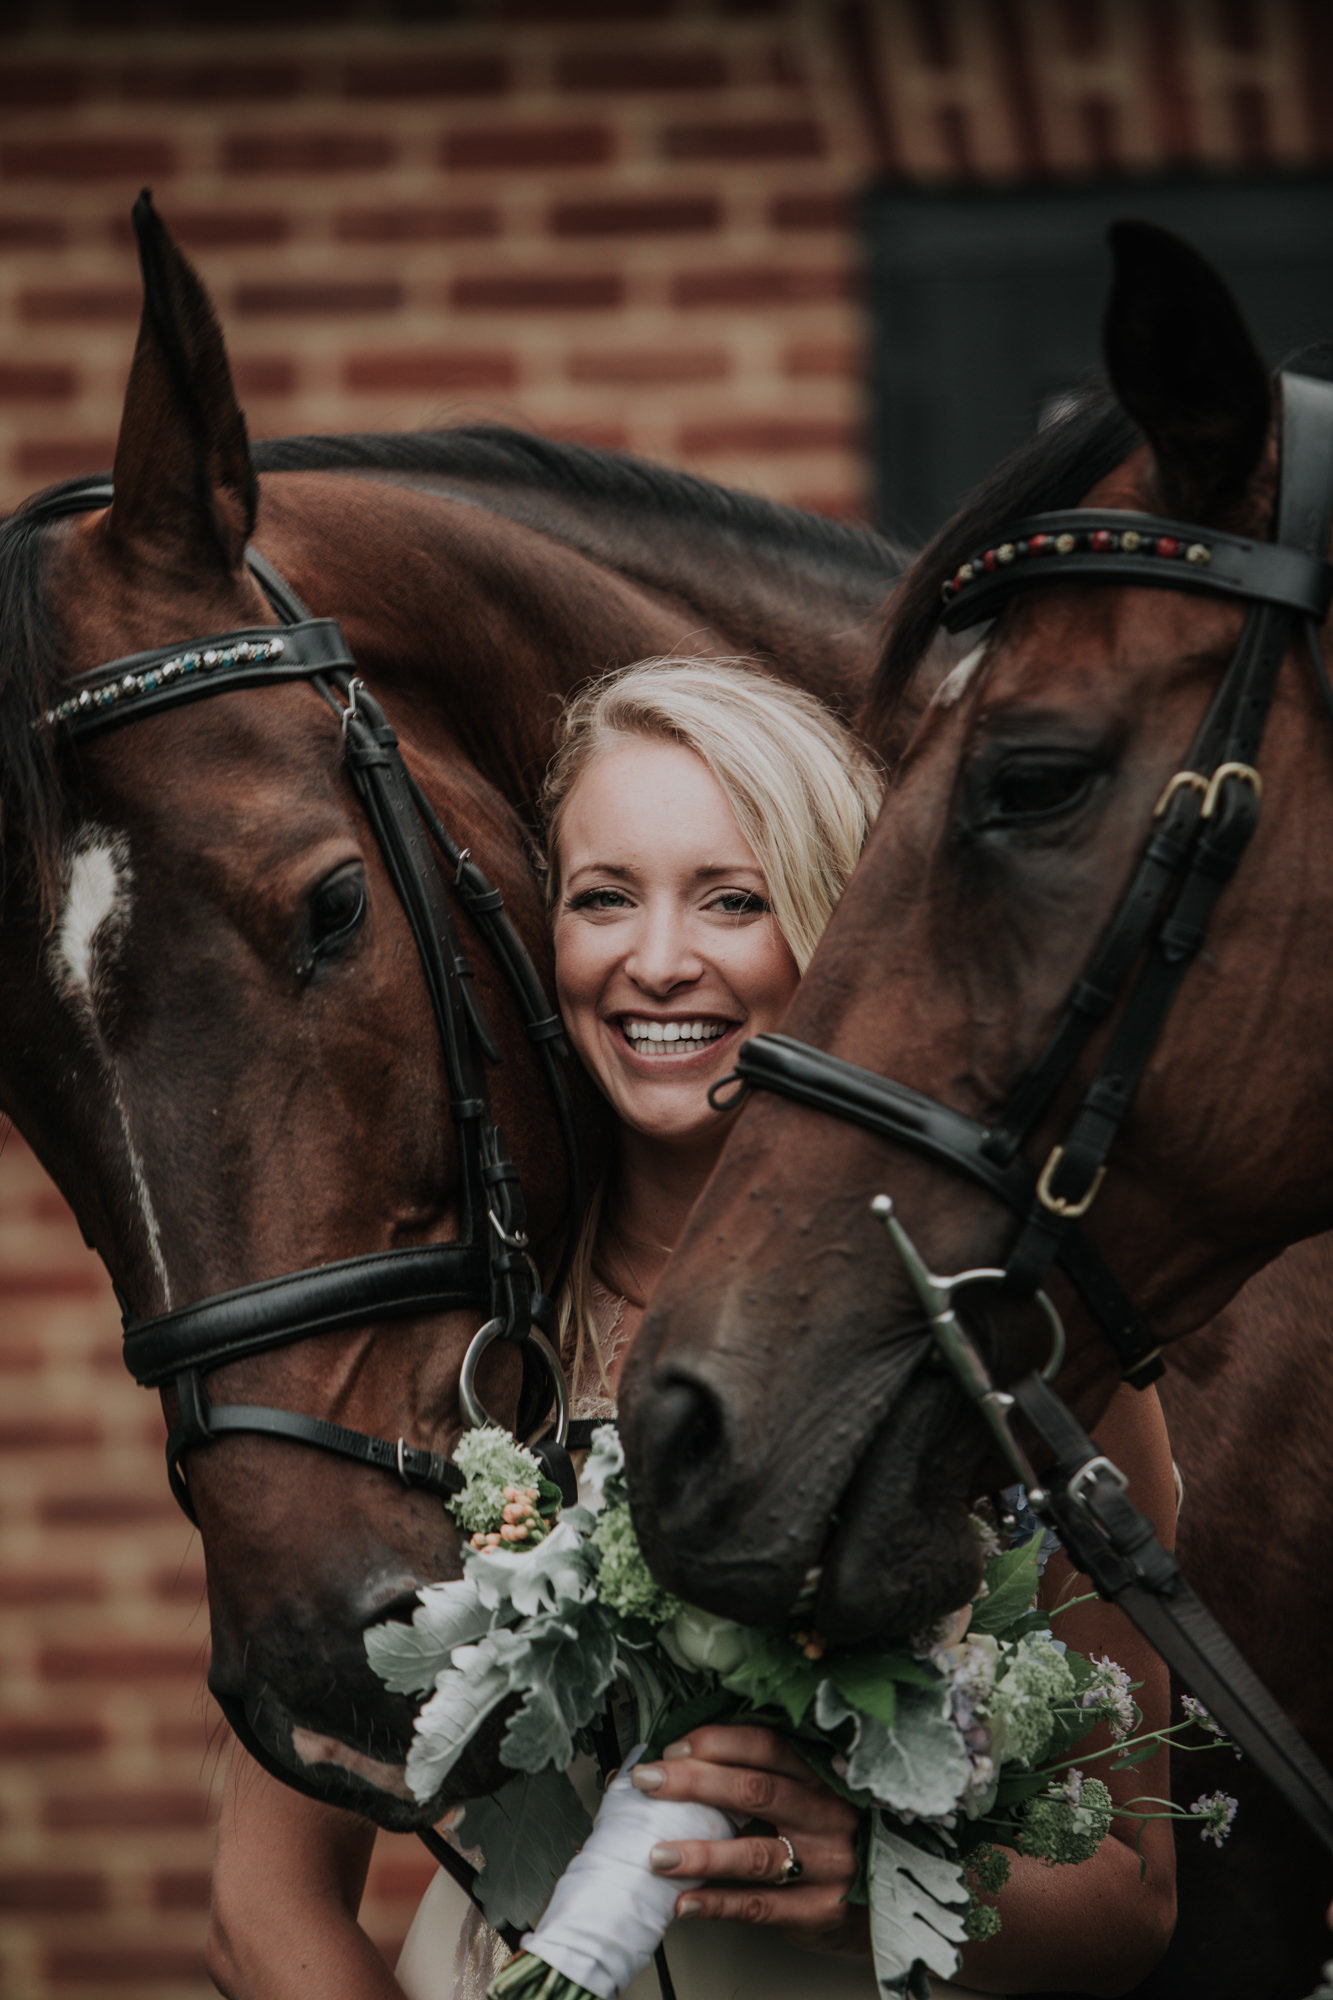 bride poses with her horses at her farm wedding in PA